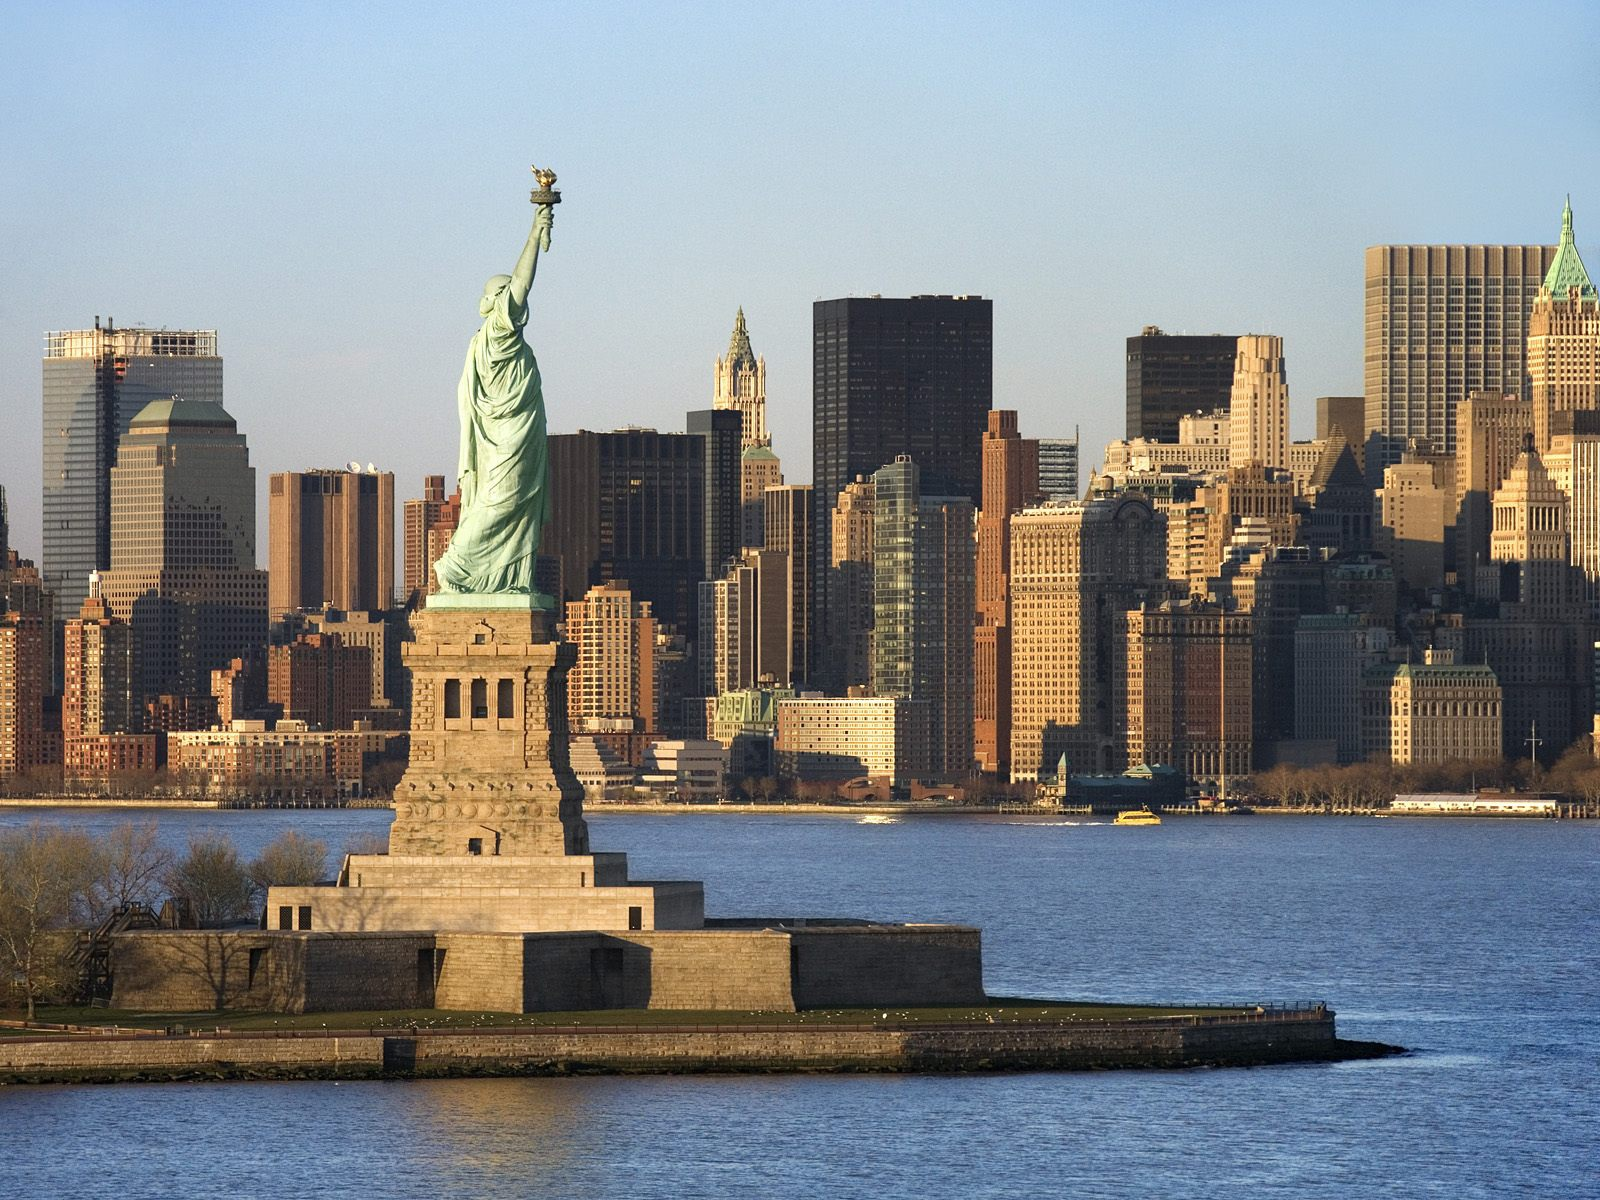 Statue+of+Liberty+in+New+York.jpg